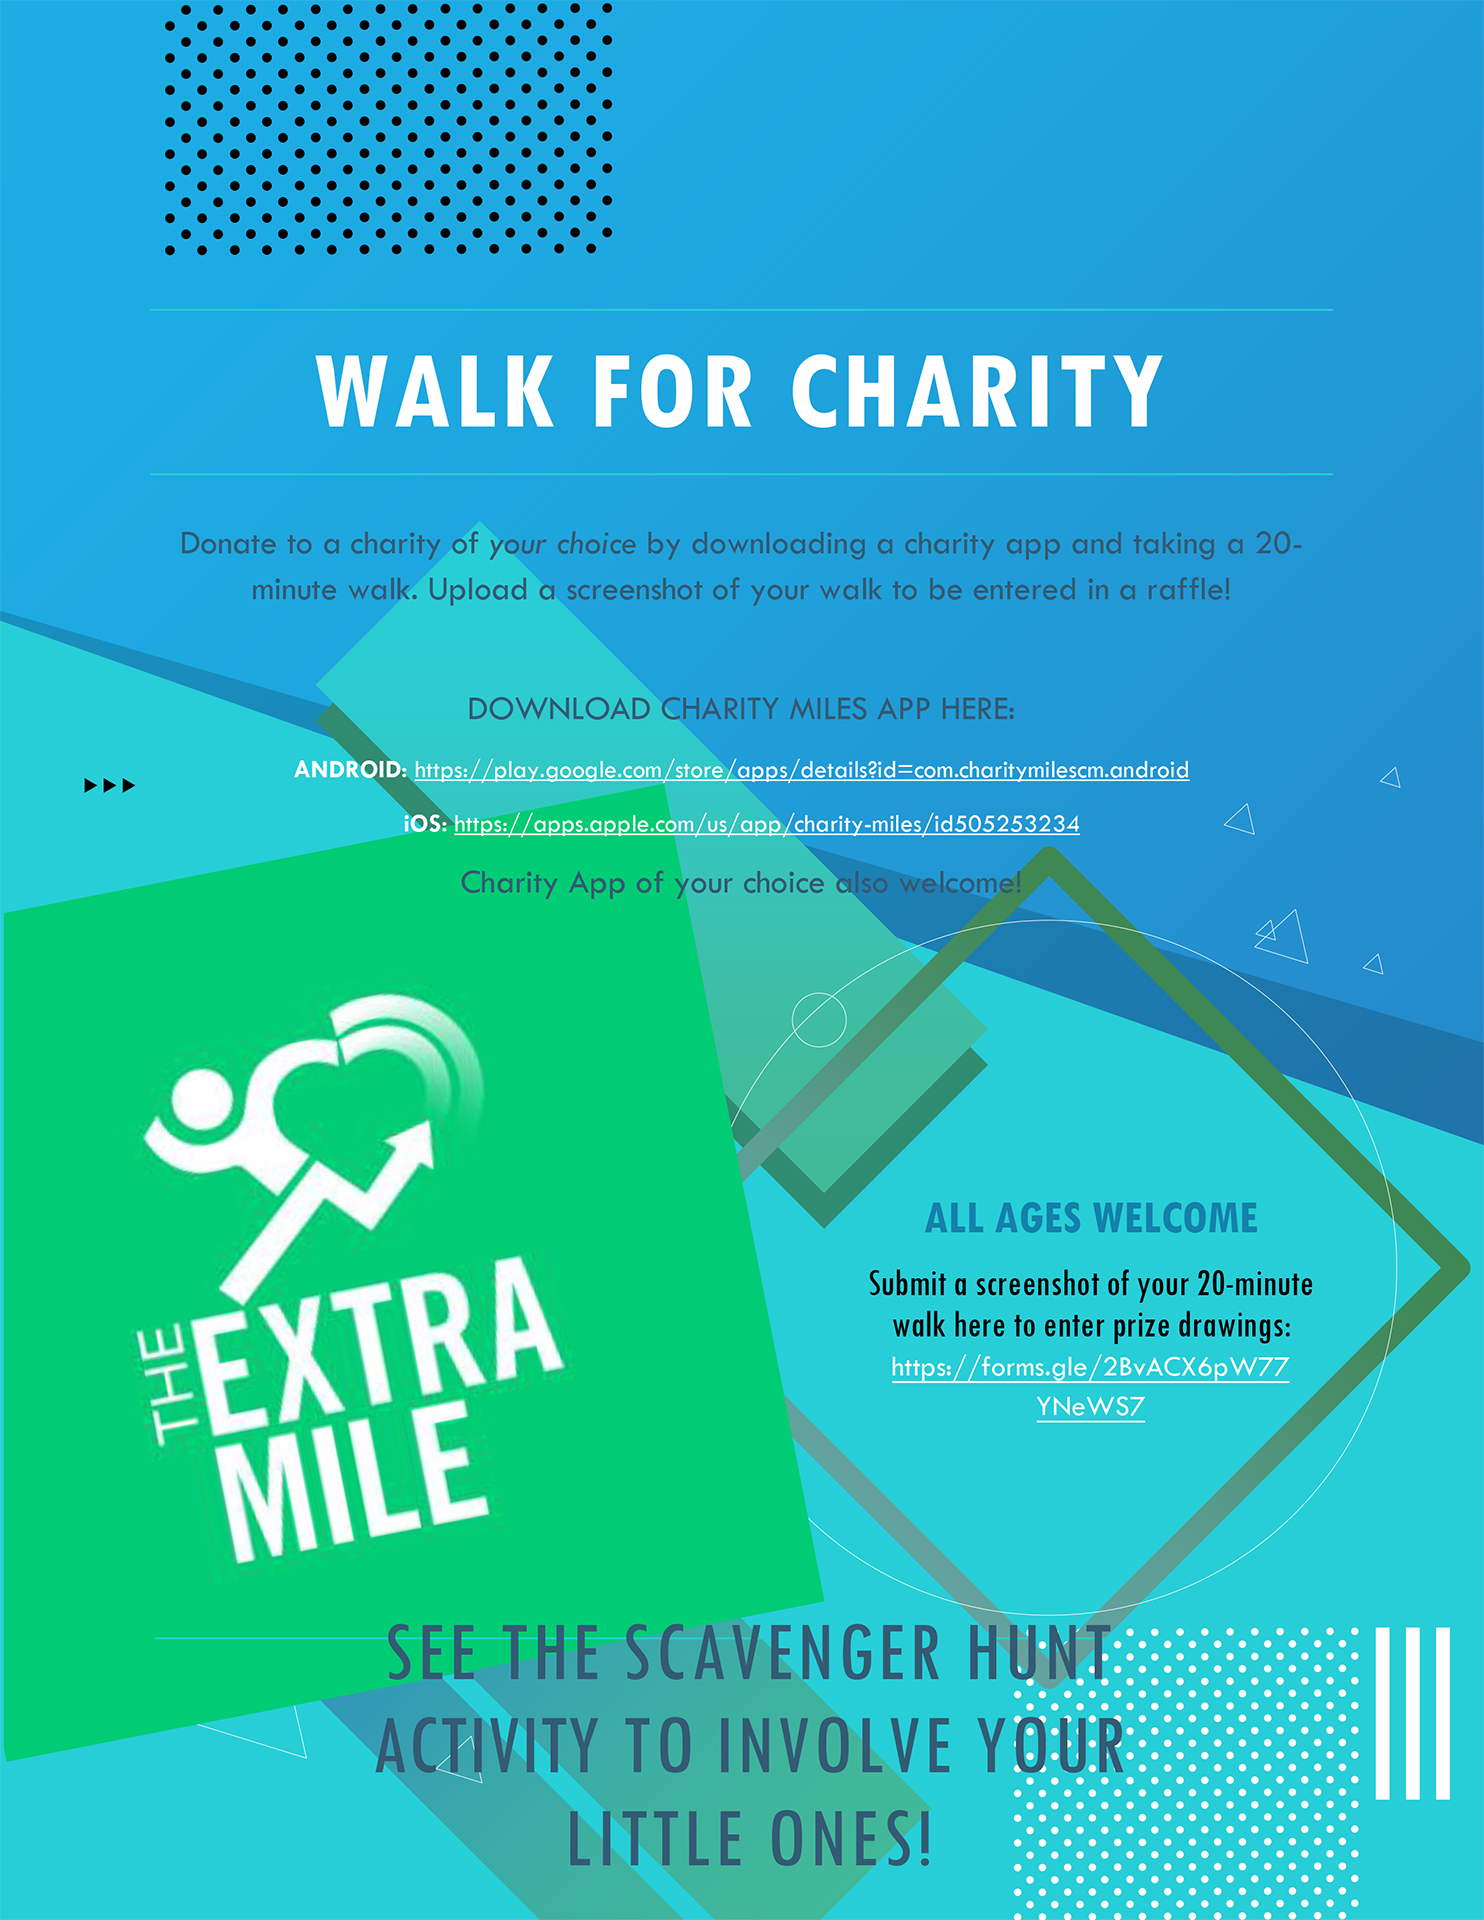 Walk for Charity